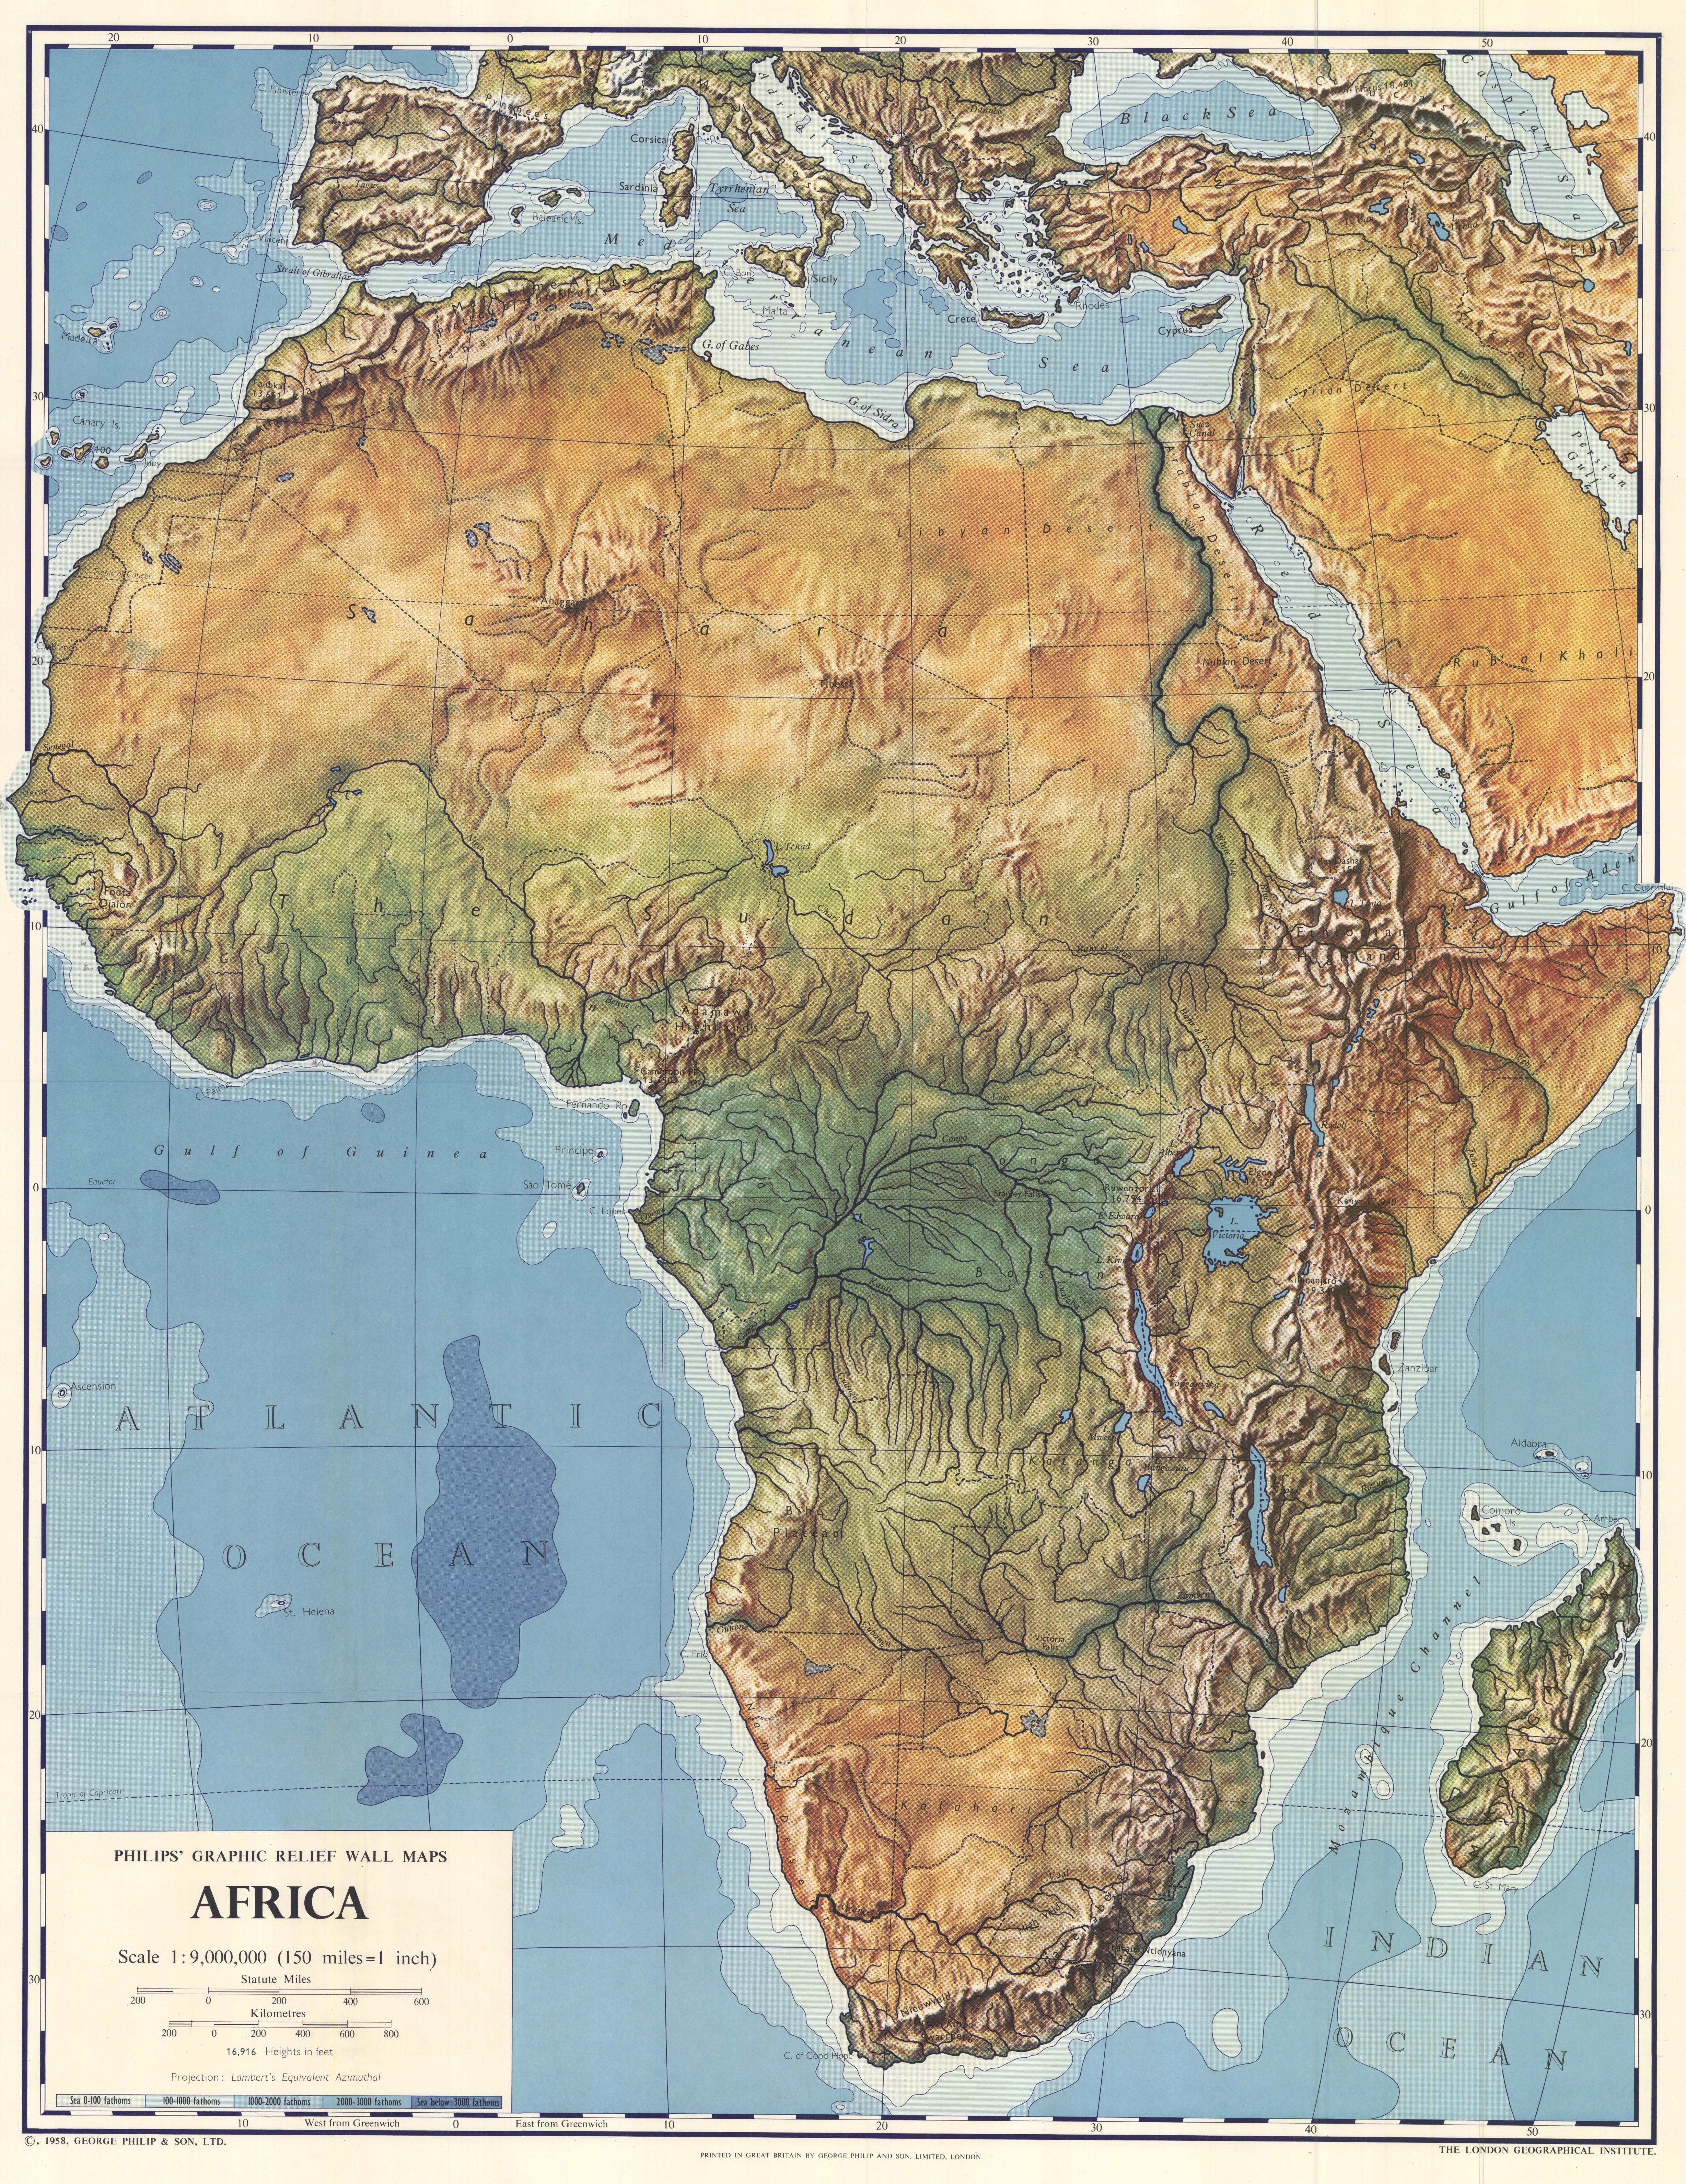 12 Awesome Physical Map Of Africa With Landforms Images